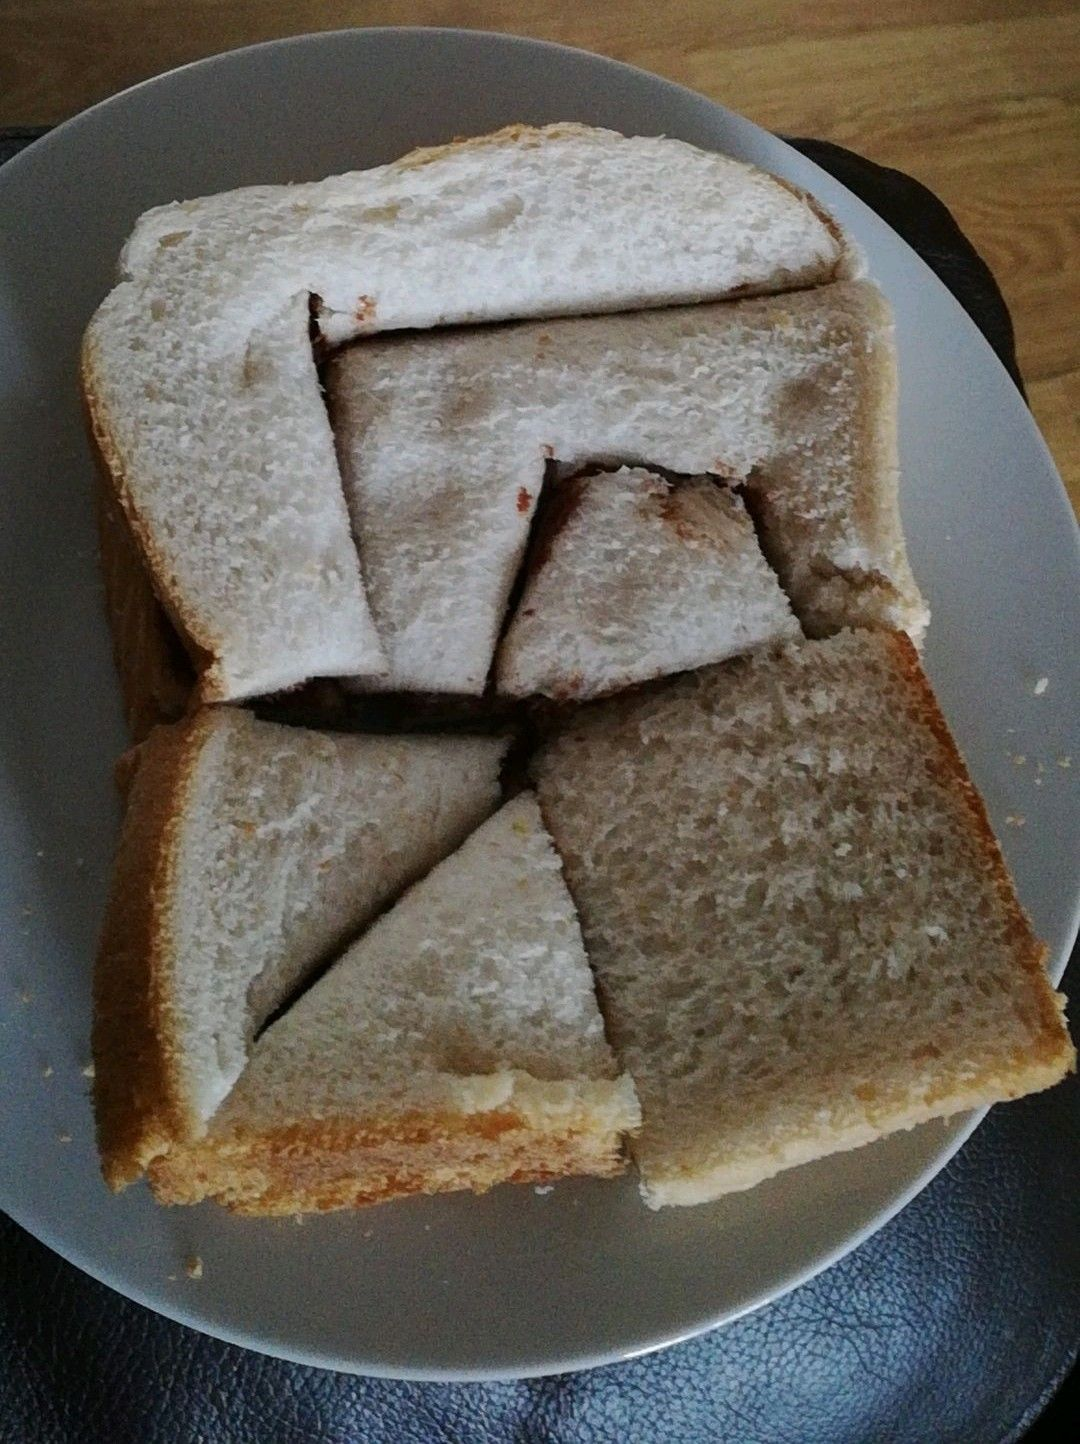 My girlfriend likes to cut my sandwiches into weird shapes just to watch me suffer.